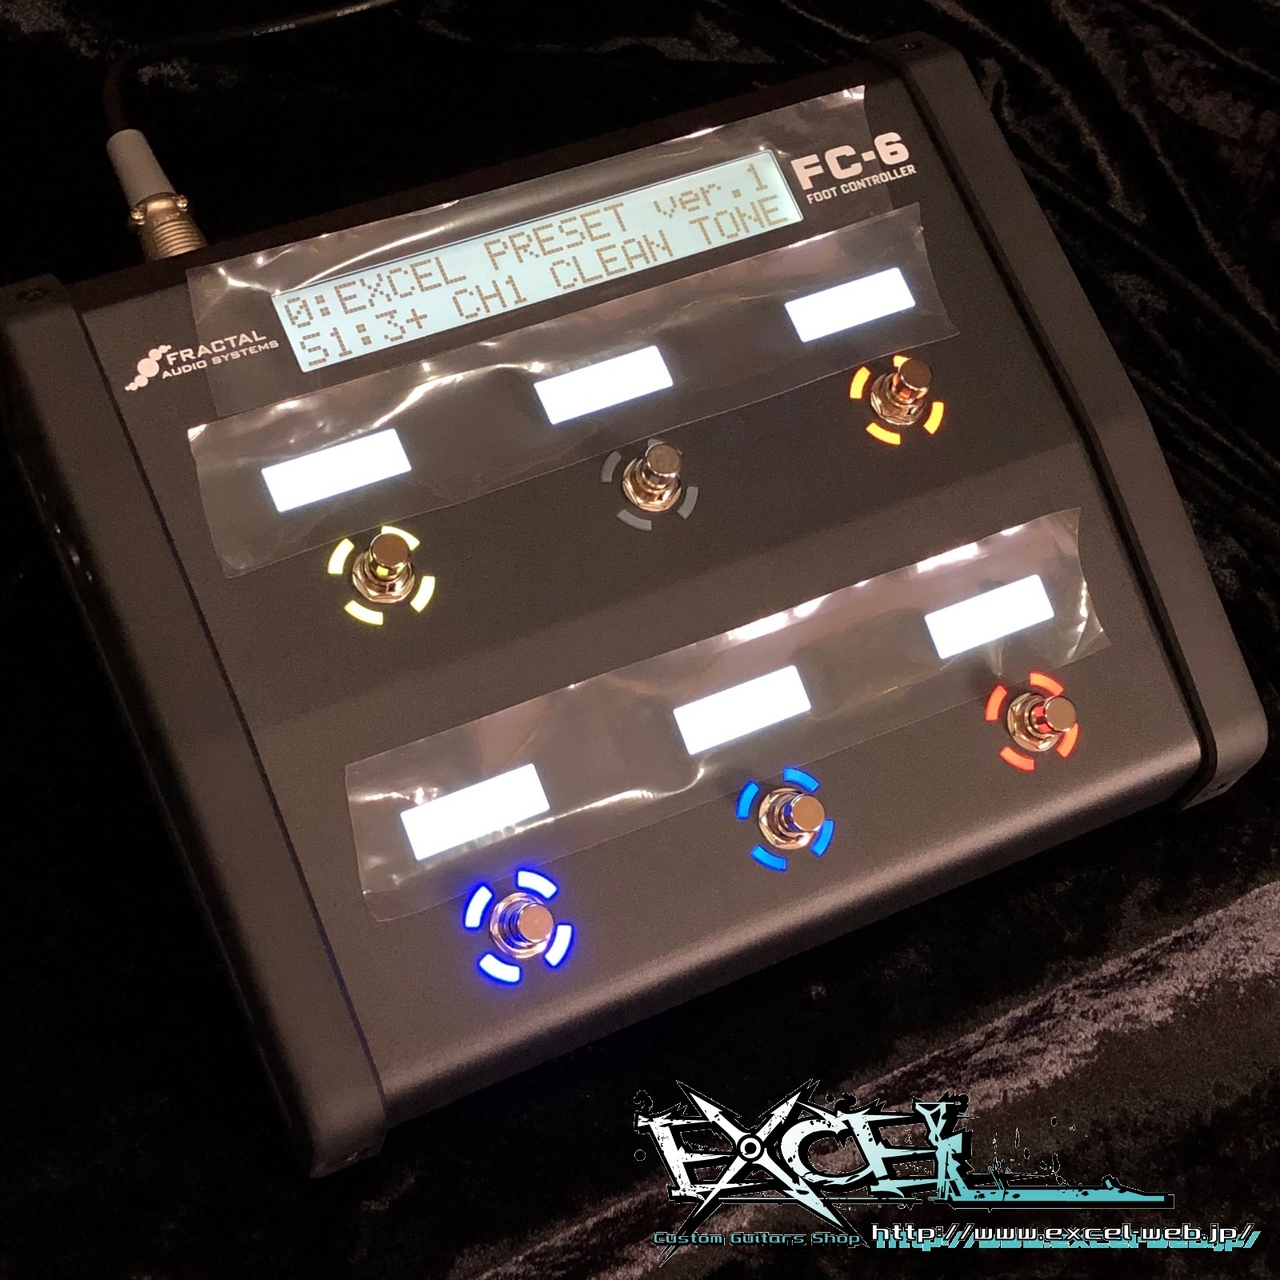 FRACTAL AUDIO SYSTEMS FC-6(「AXE-FX III」用コントローラー